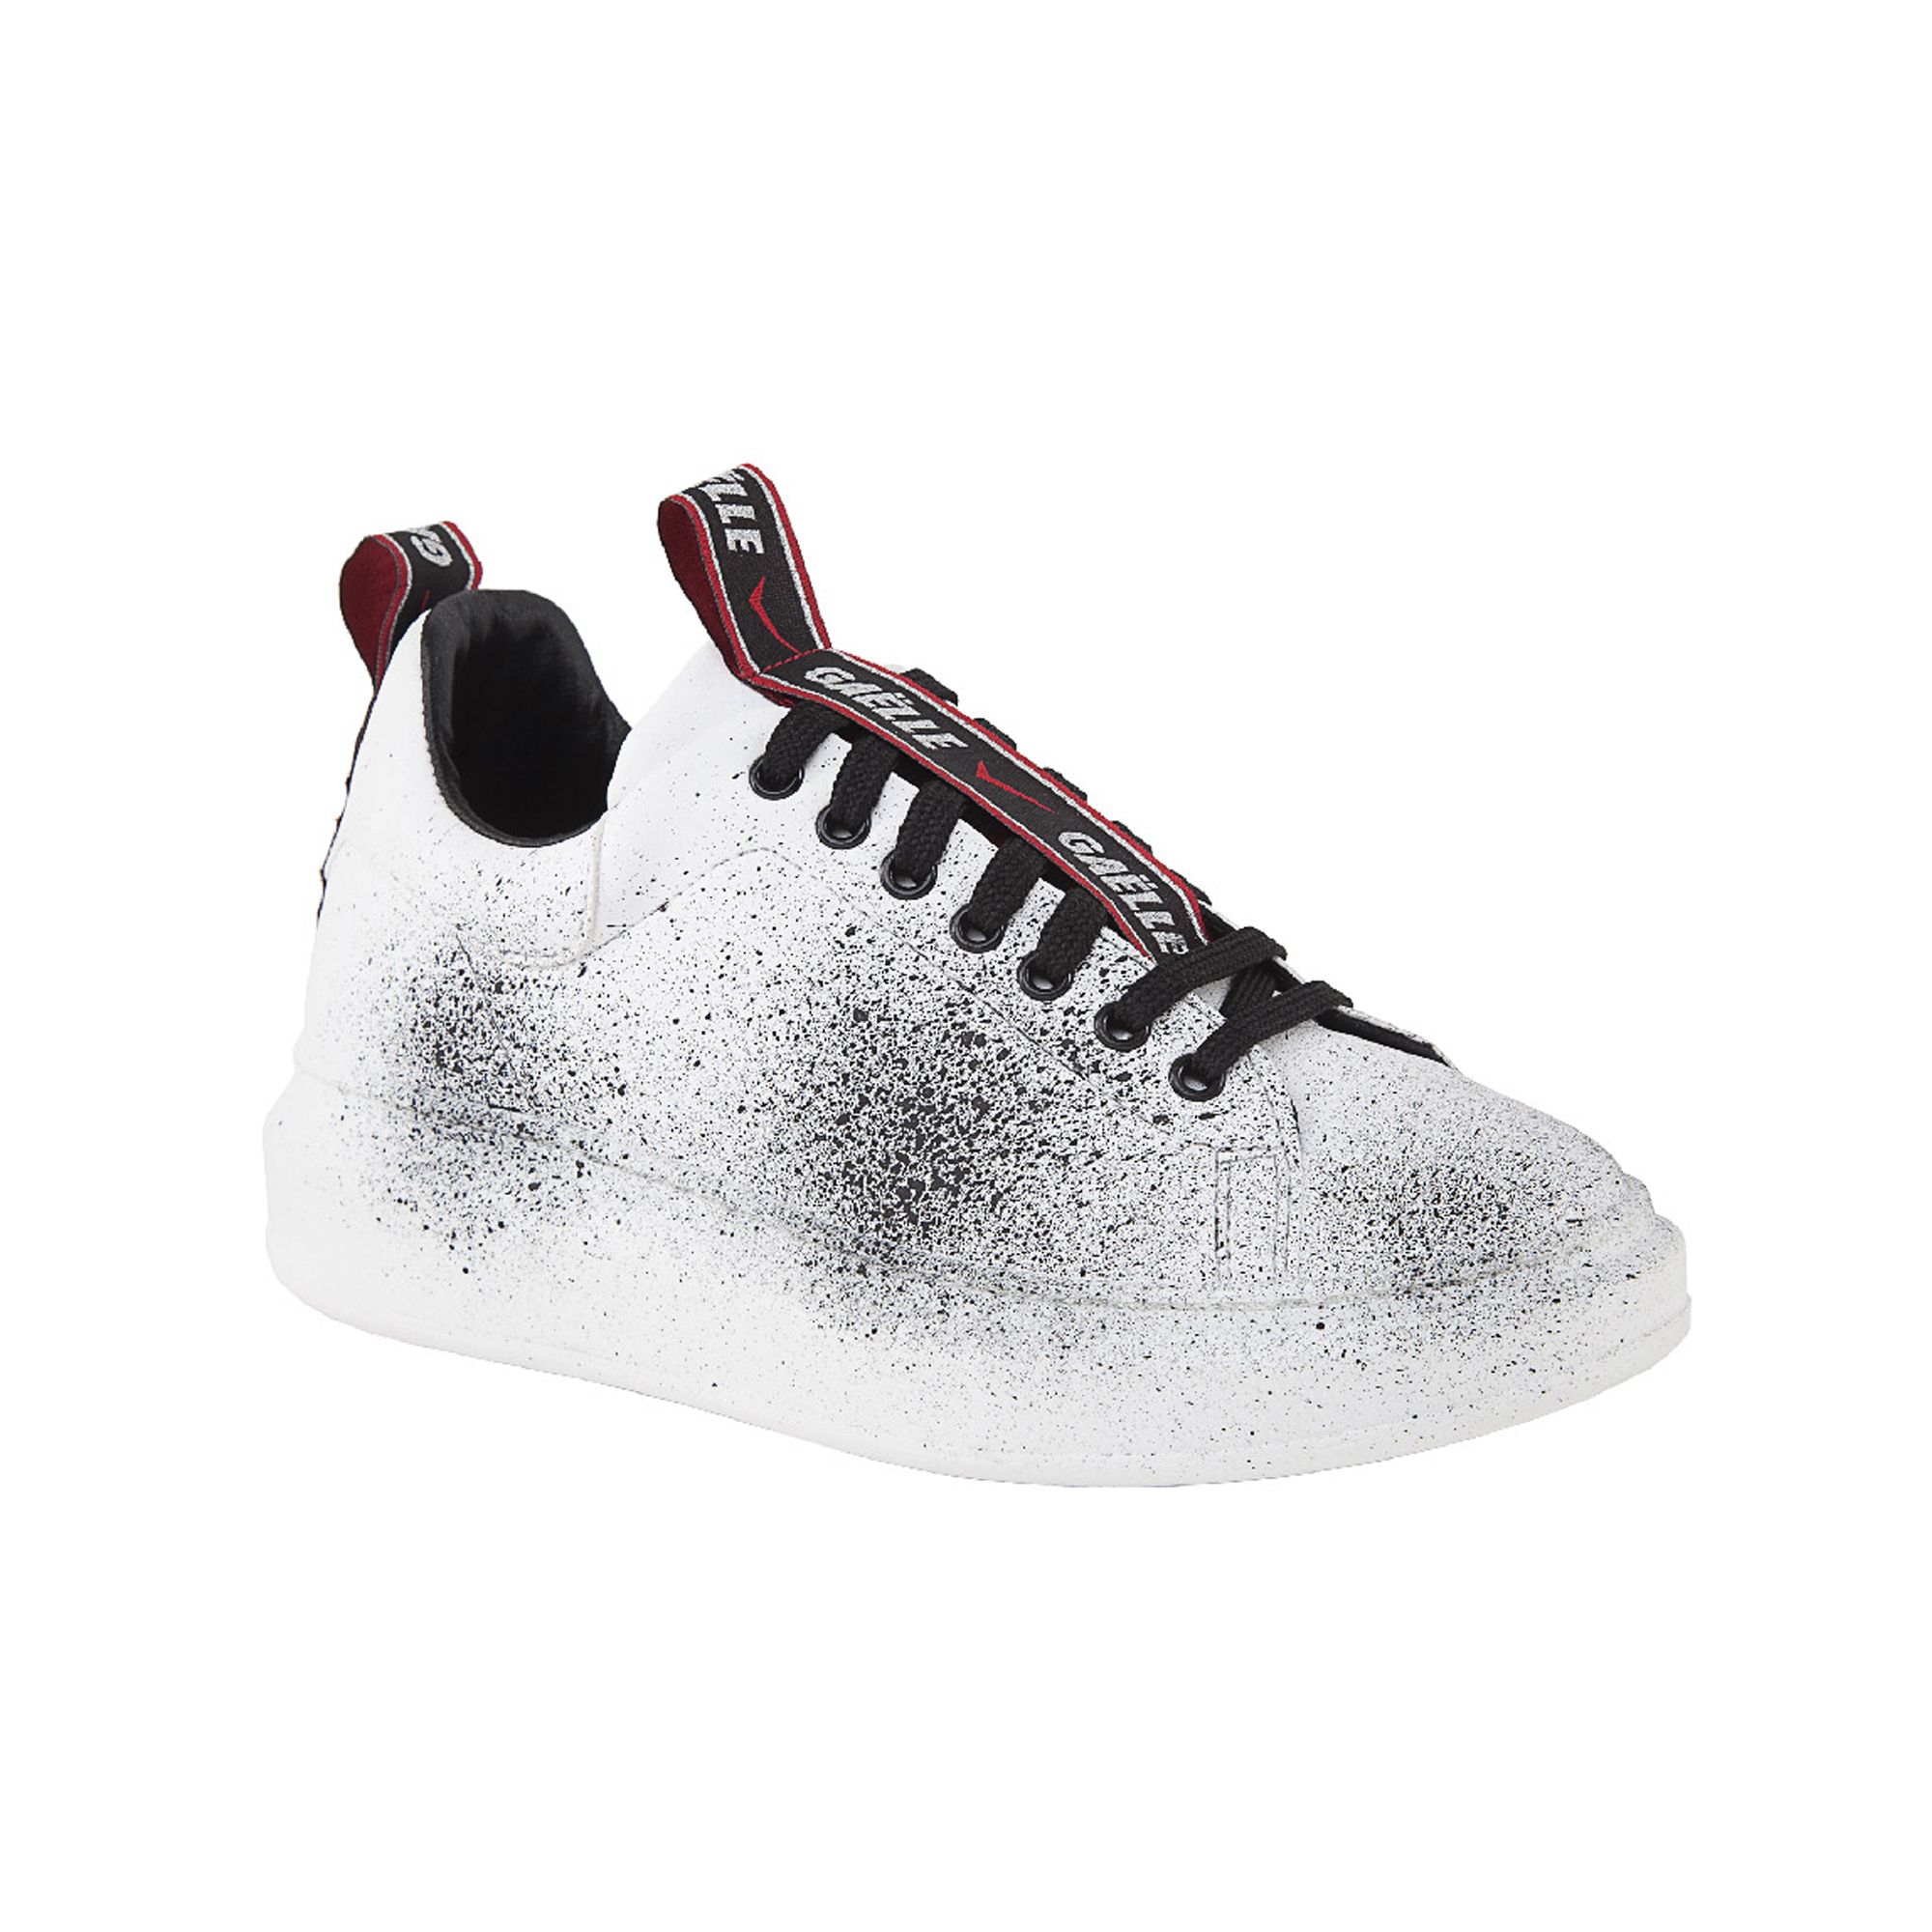 SNEAKERS - GBDA1306 - GAELLE PARIS